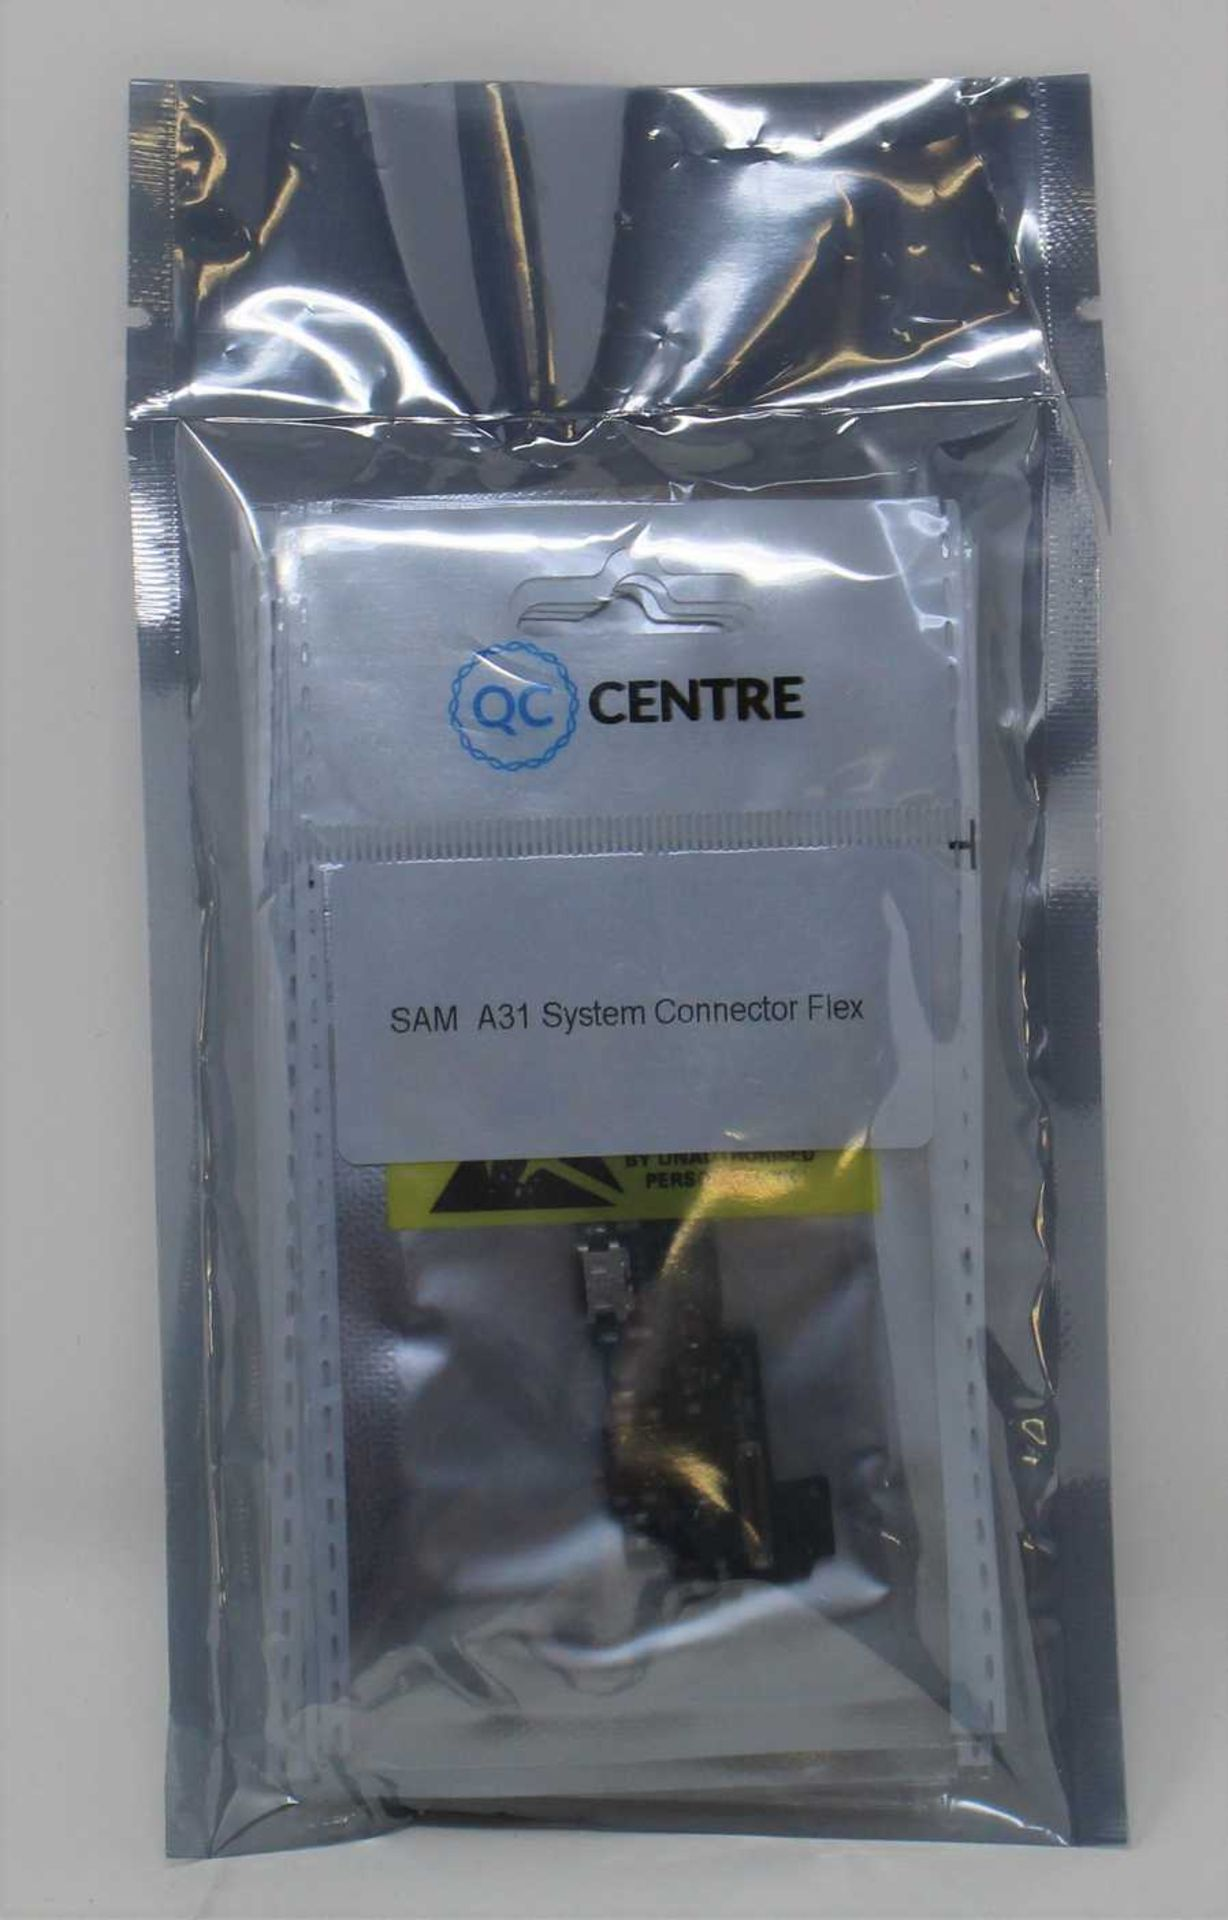 Ten as new QC Centre replacement back cameras for Samsung A31 (Packaging sealed).